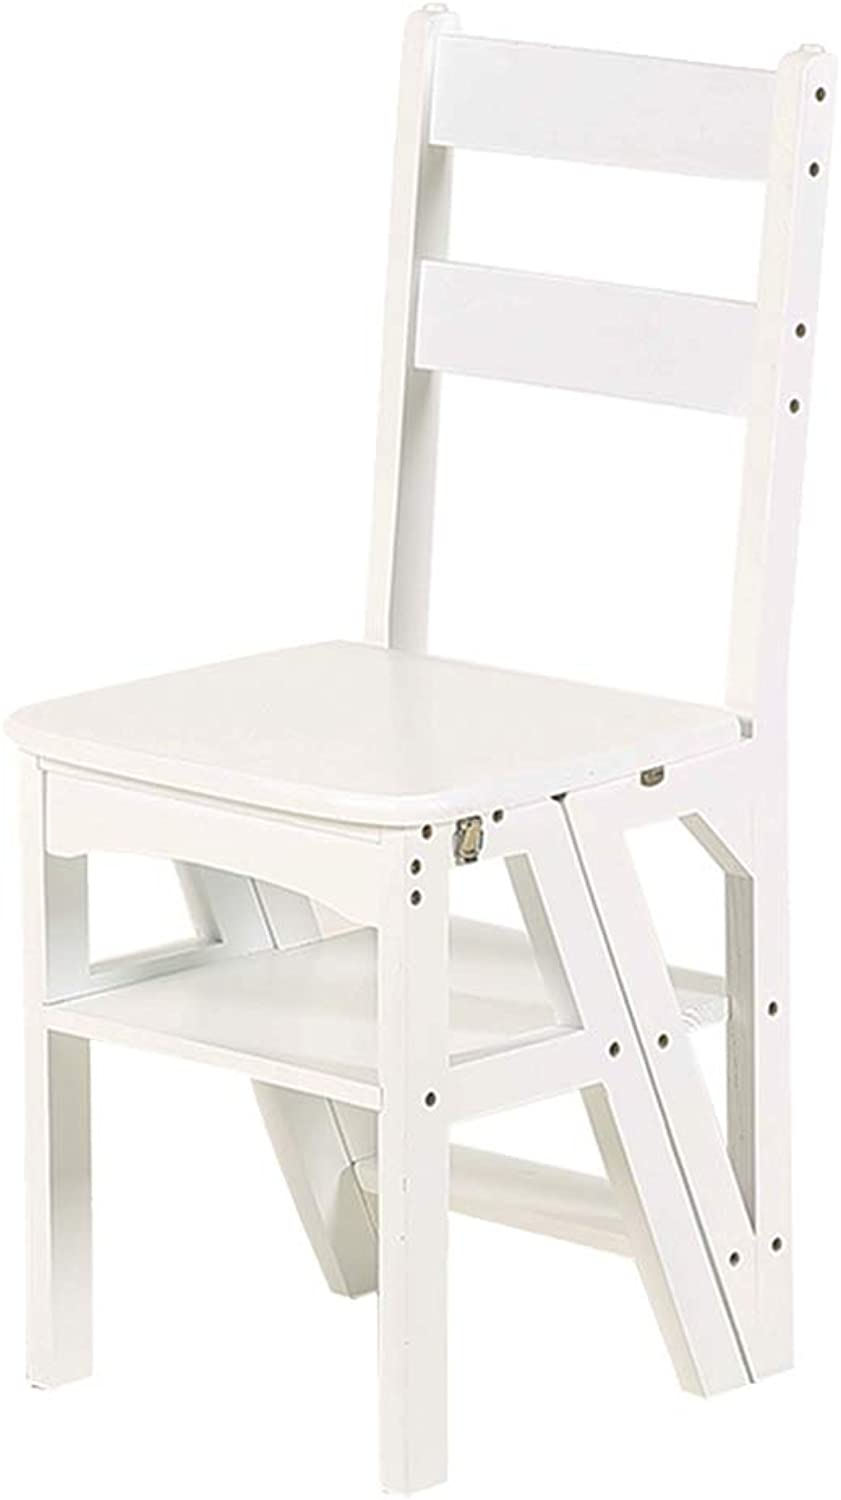 XSJ-Stepladder Household Folding Wooden Step Stool Stair Chair Seats for Adults & Kids, Multi-Purpose Fold Up Library Kitchen Ladder Chair 4-Steps Bench,White